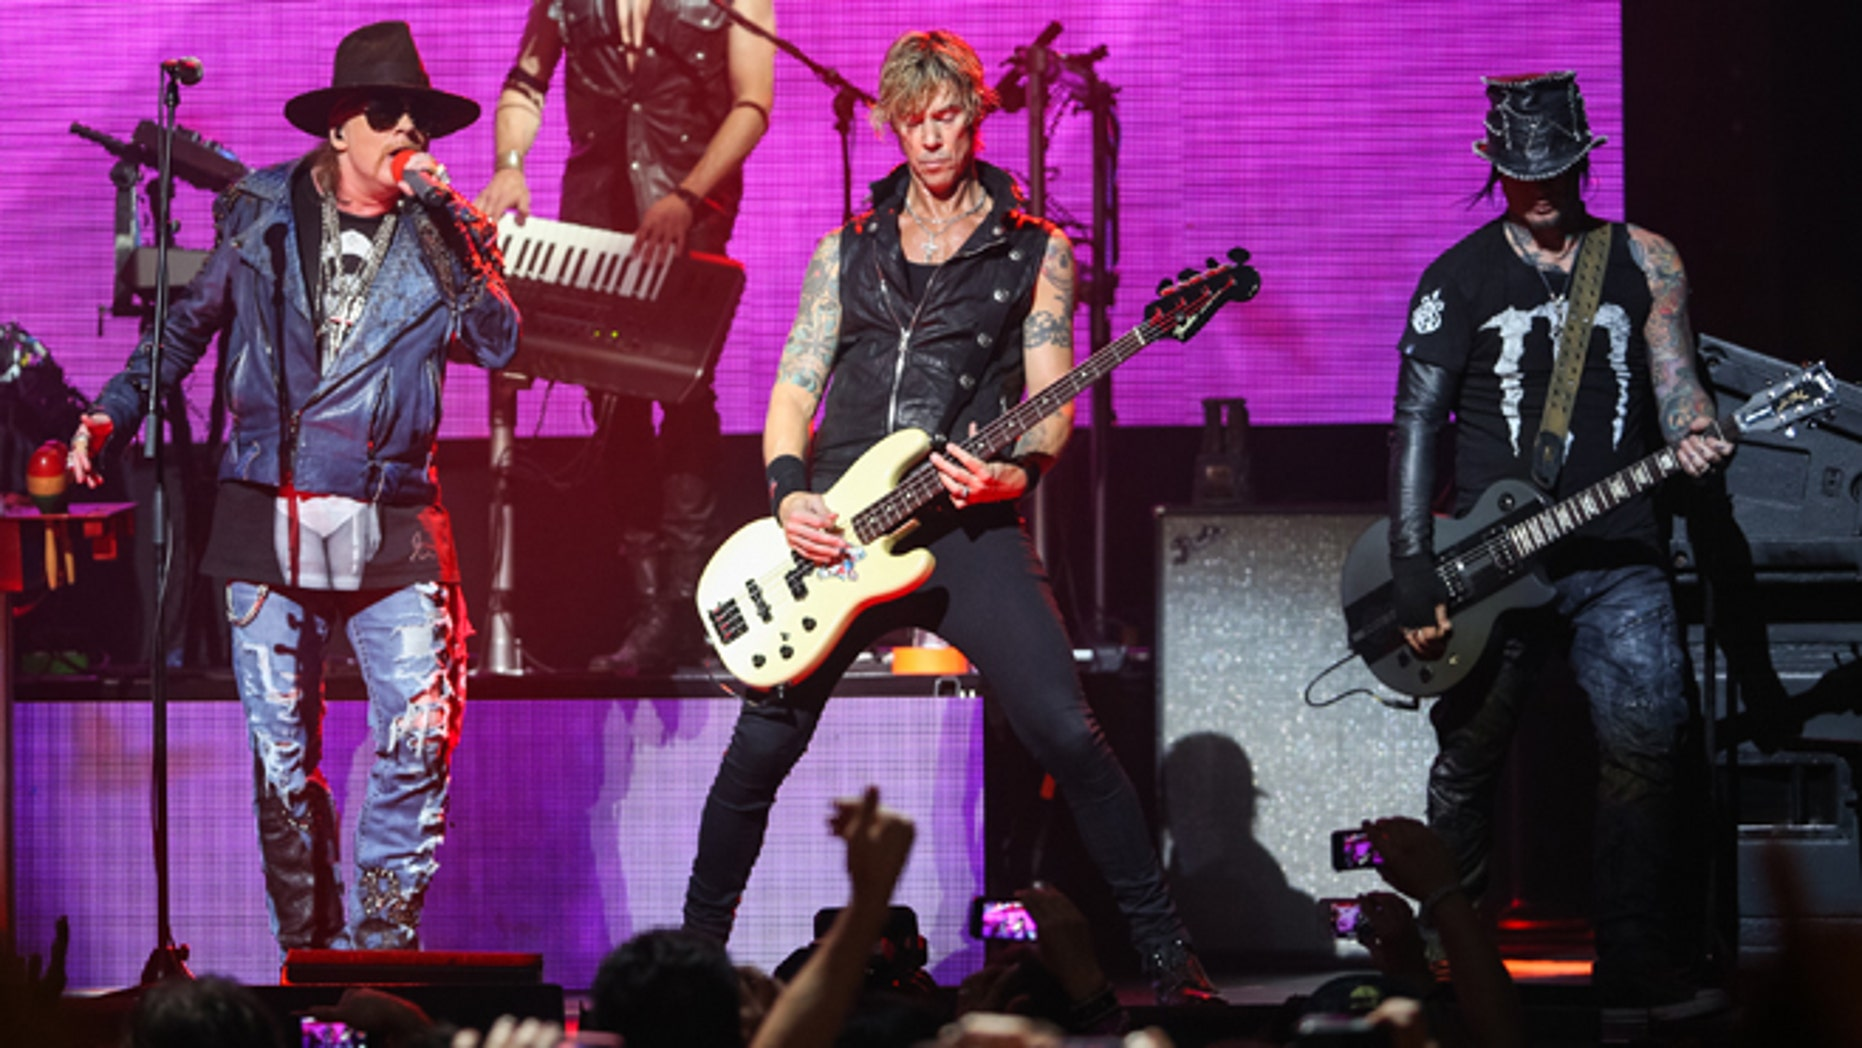 April 23, 2014 file photo, Axl Rose, from left, Duff McKagan and DJ Ashba of Guns N' Roses perform in Los Angeles.